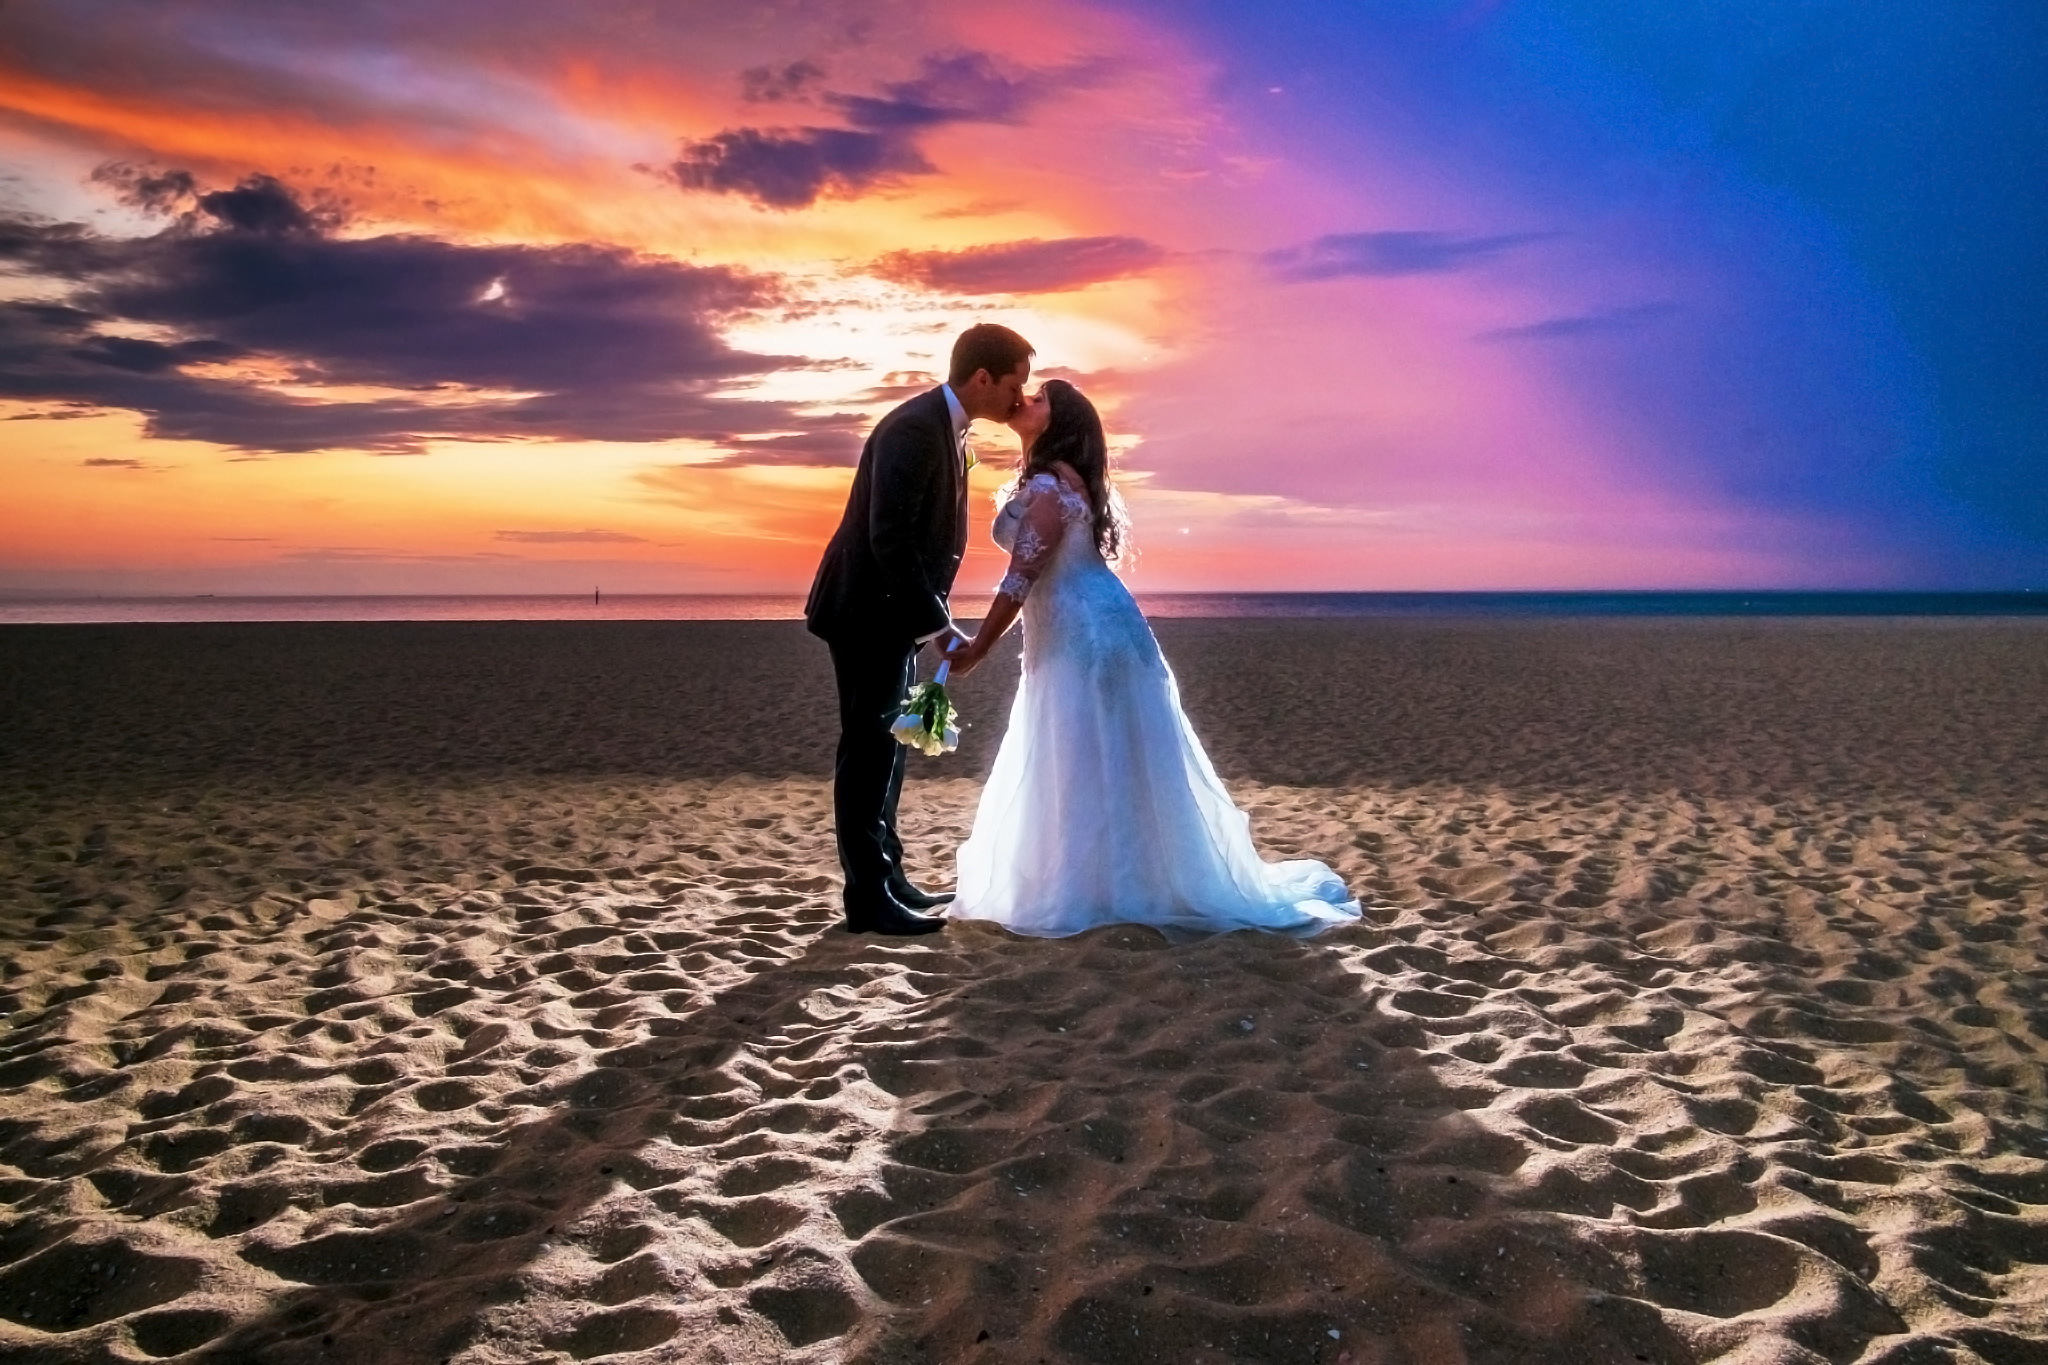 Brighton-beach-sunset-bride-and-groom-kissing-on-sand.jpeg